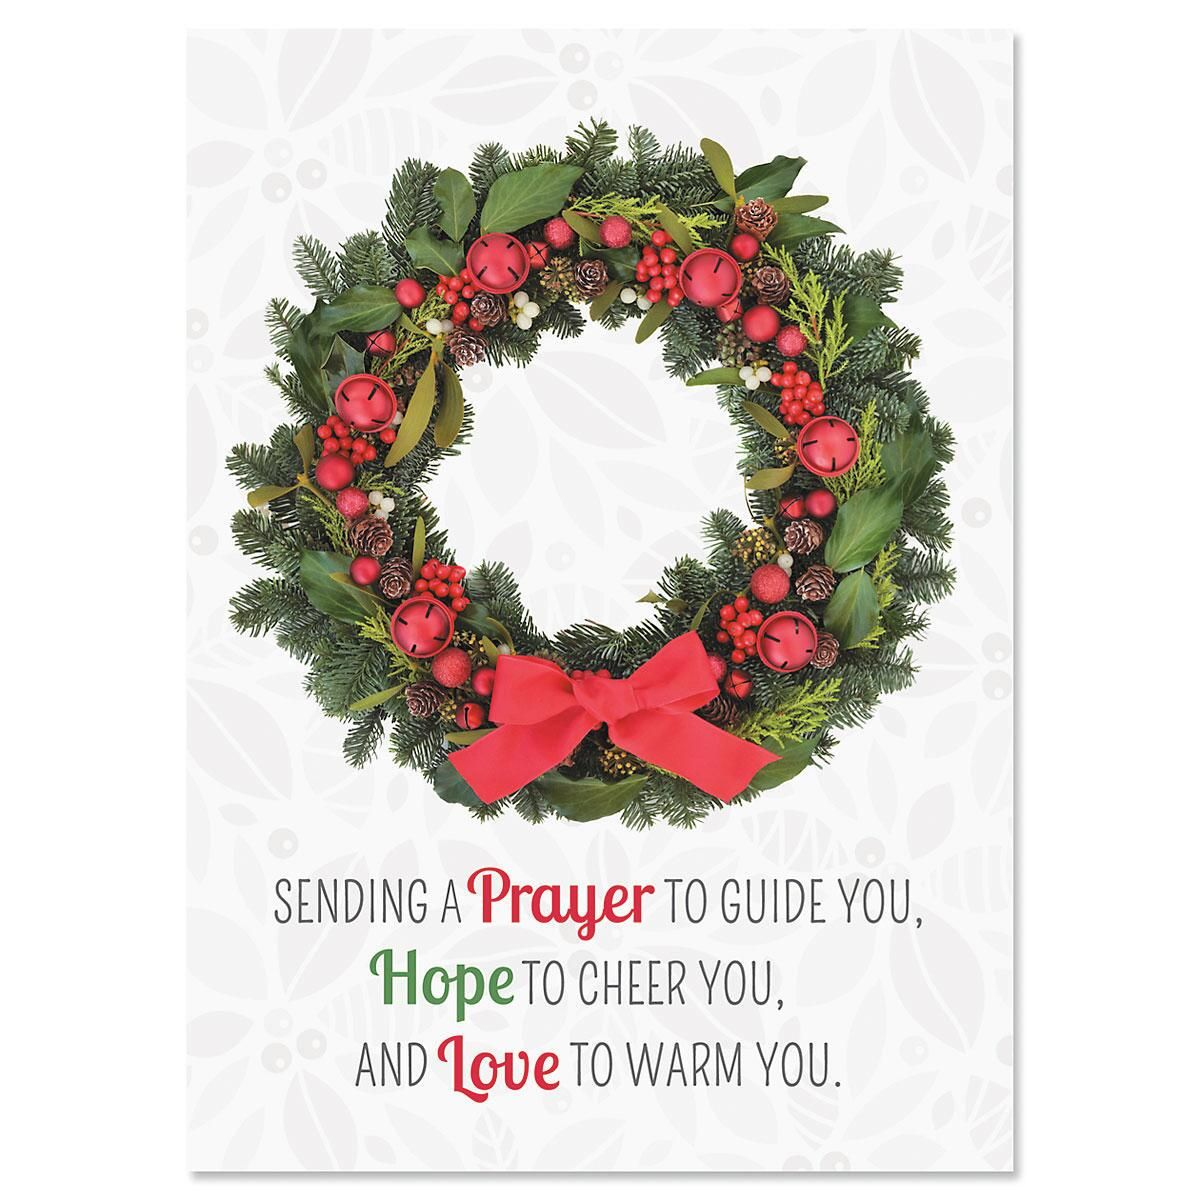 Photo Wreath Christmas Cards - Personalized